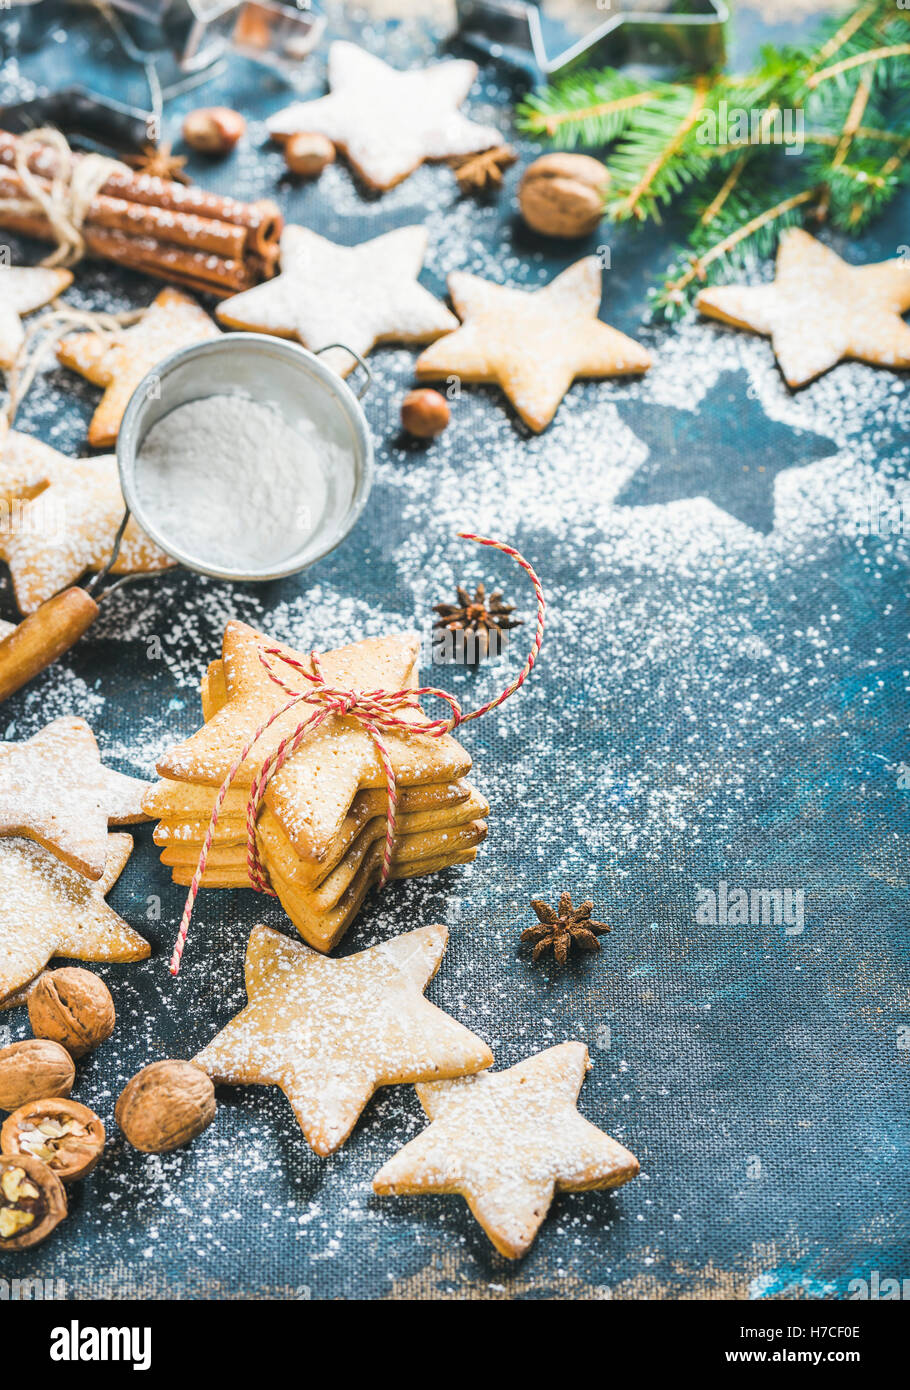 Gingerbread Christmas star shaped cookies with cinnamon, anise and nuts served with fir-tree branch on dark plywood - Stock Image